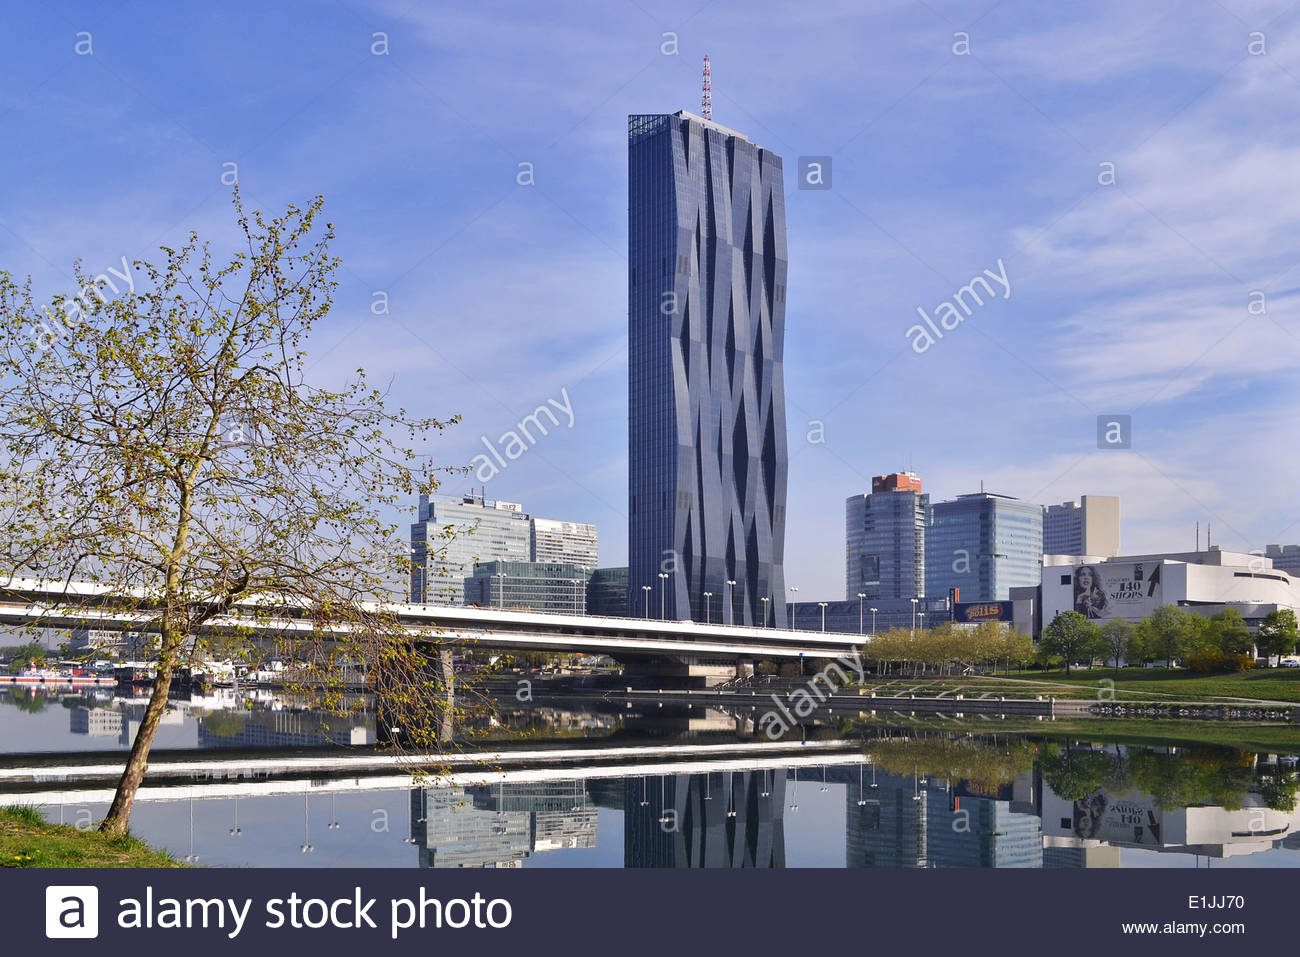 Donau City (DC) Tower 1 - modern skyscraper designed by French architect Dominique Perrault on the bank of river Danube in Vienna Austria Europe. - Stock Image